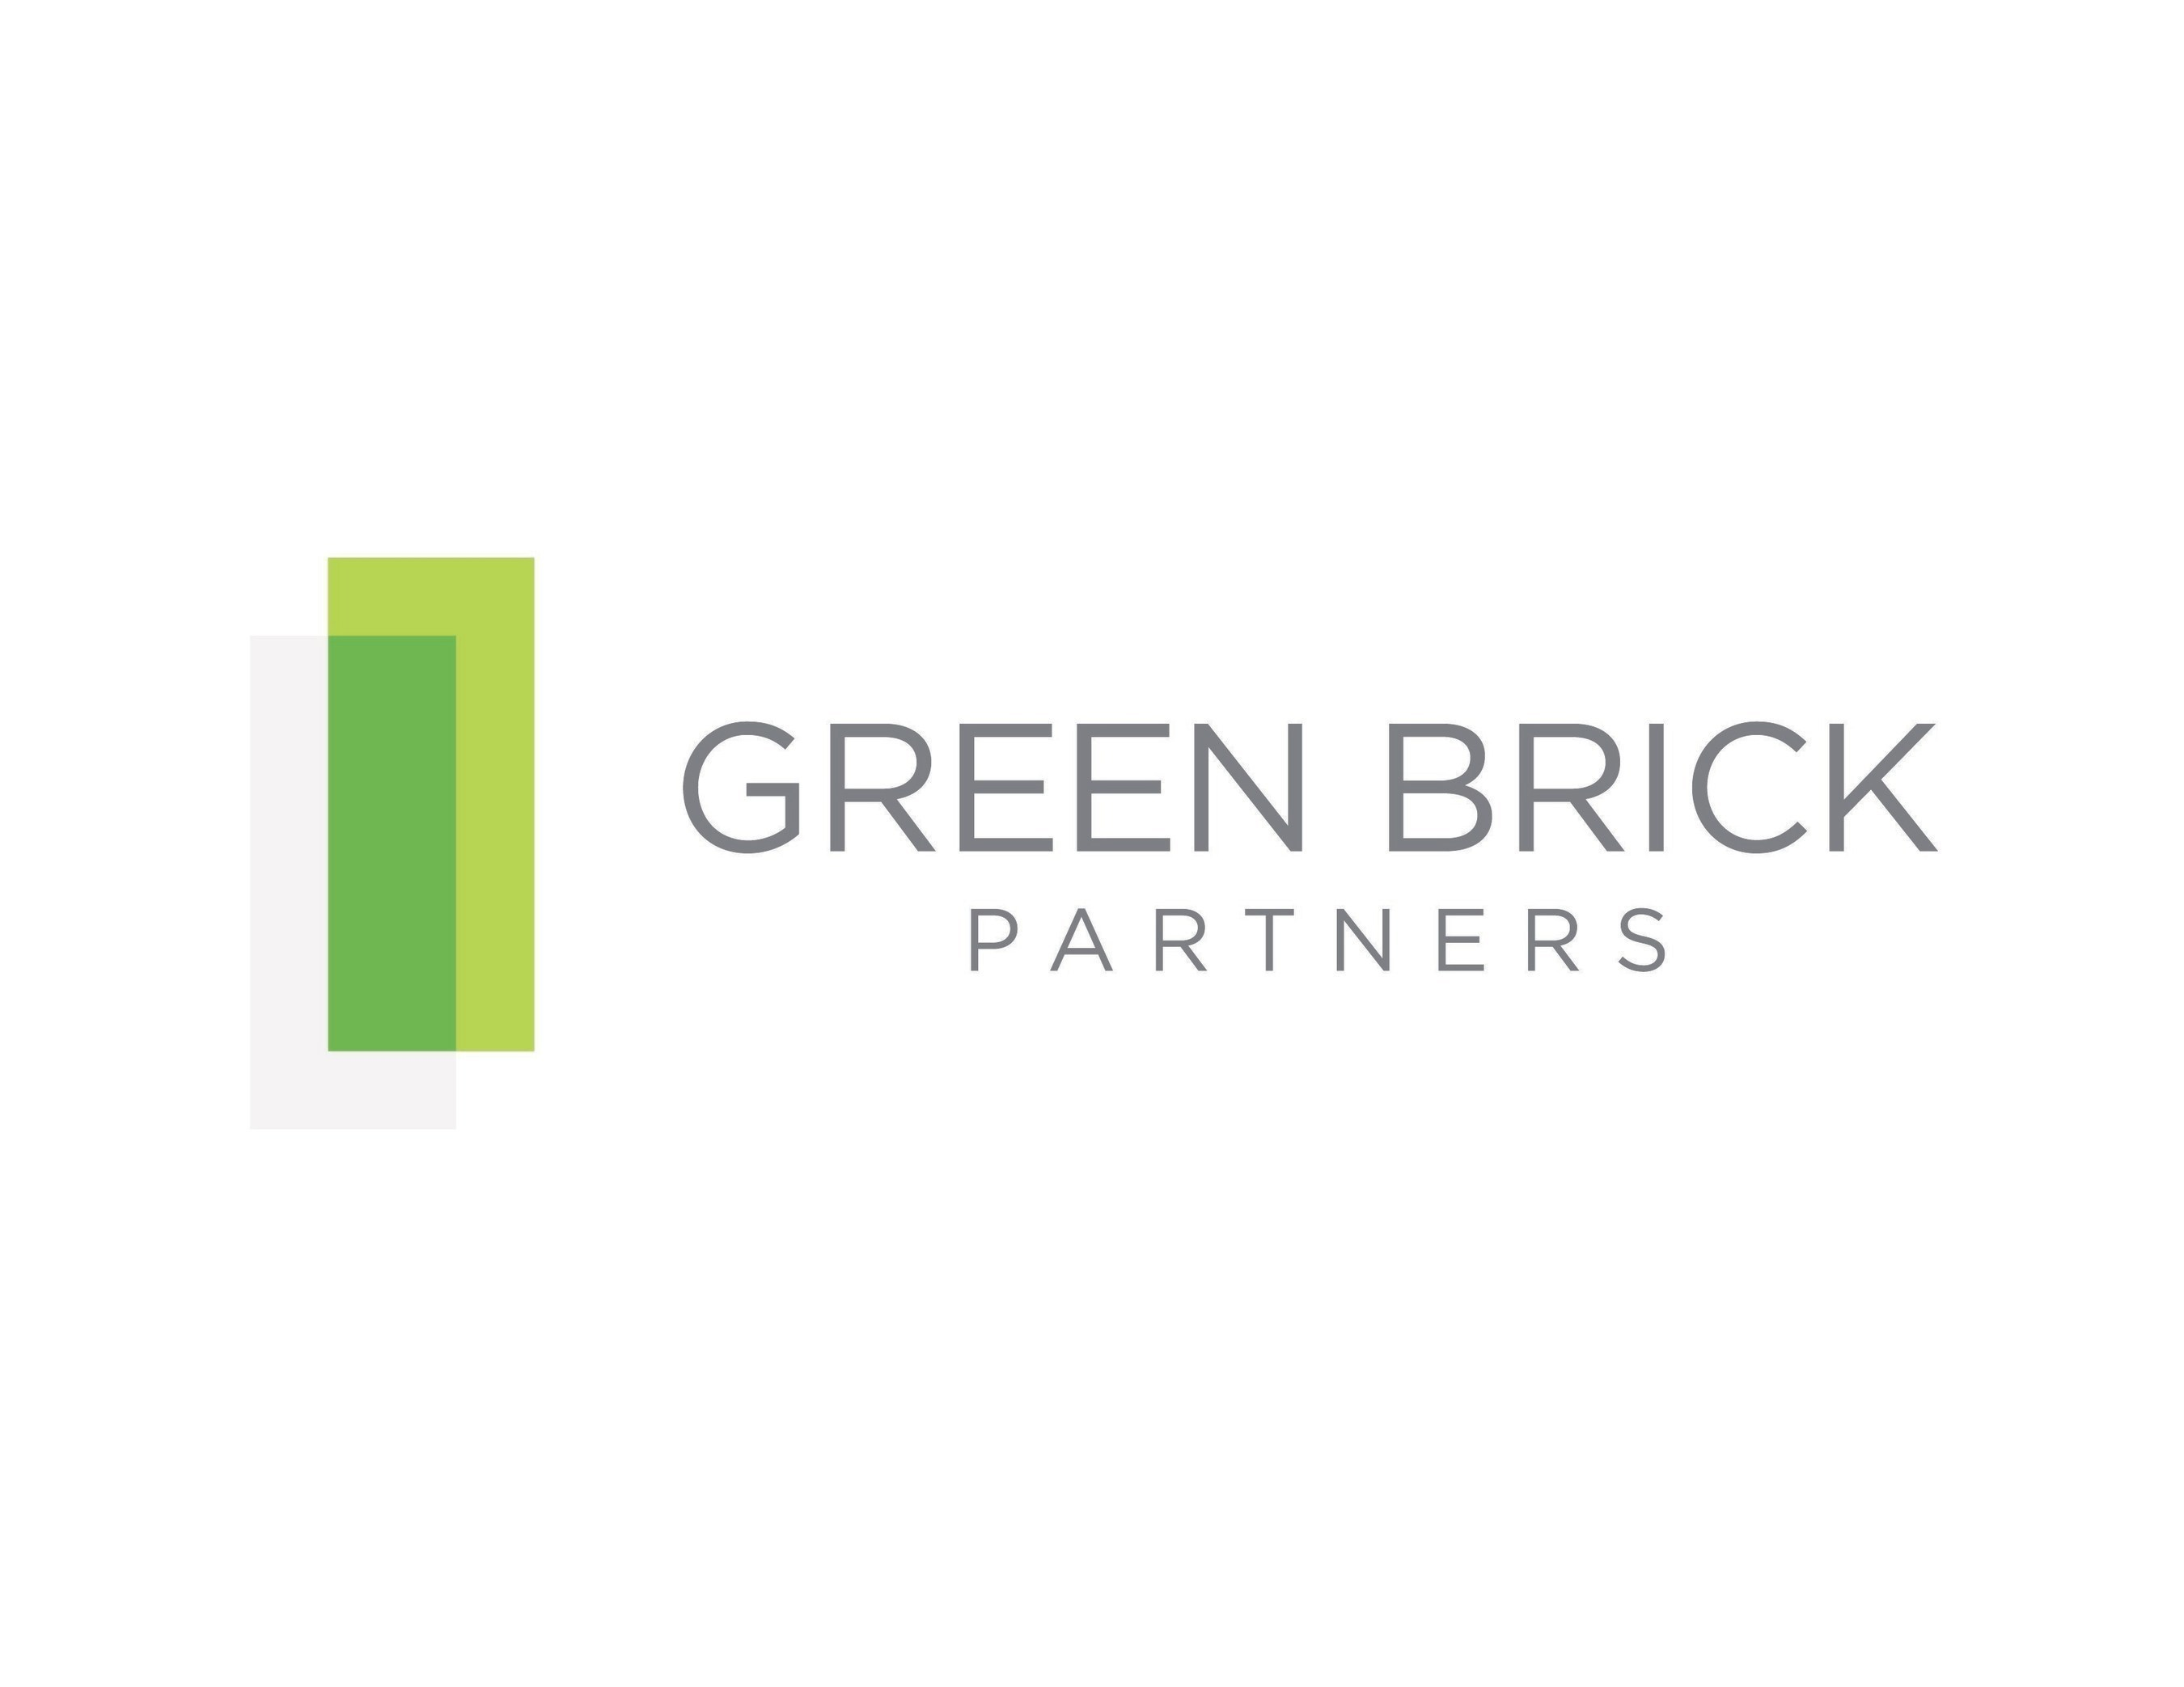 Green Brick Partners, Inc. Announces Pricing Of Common Stock Offering